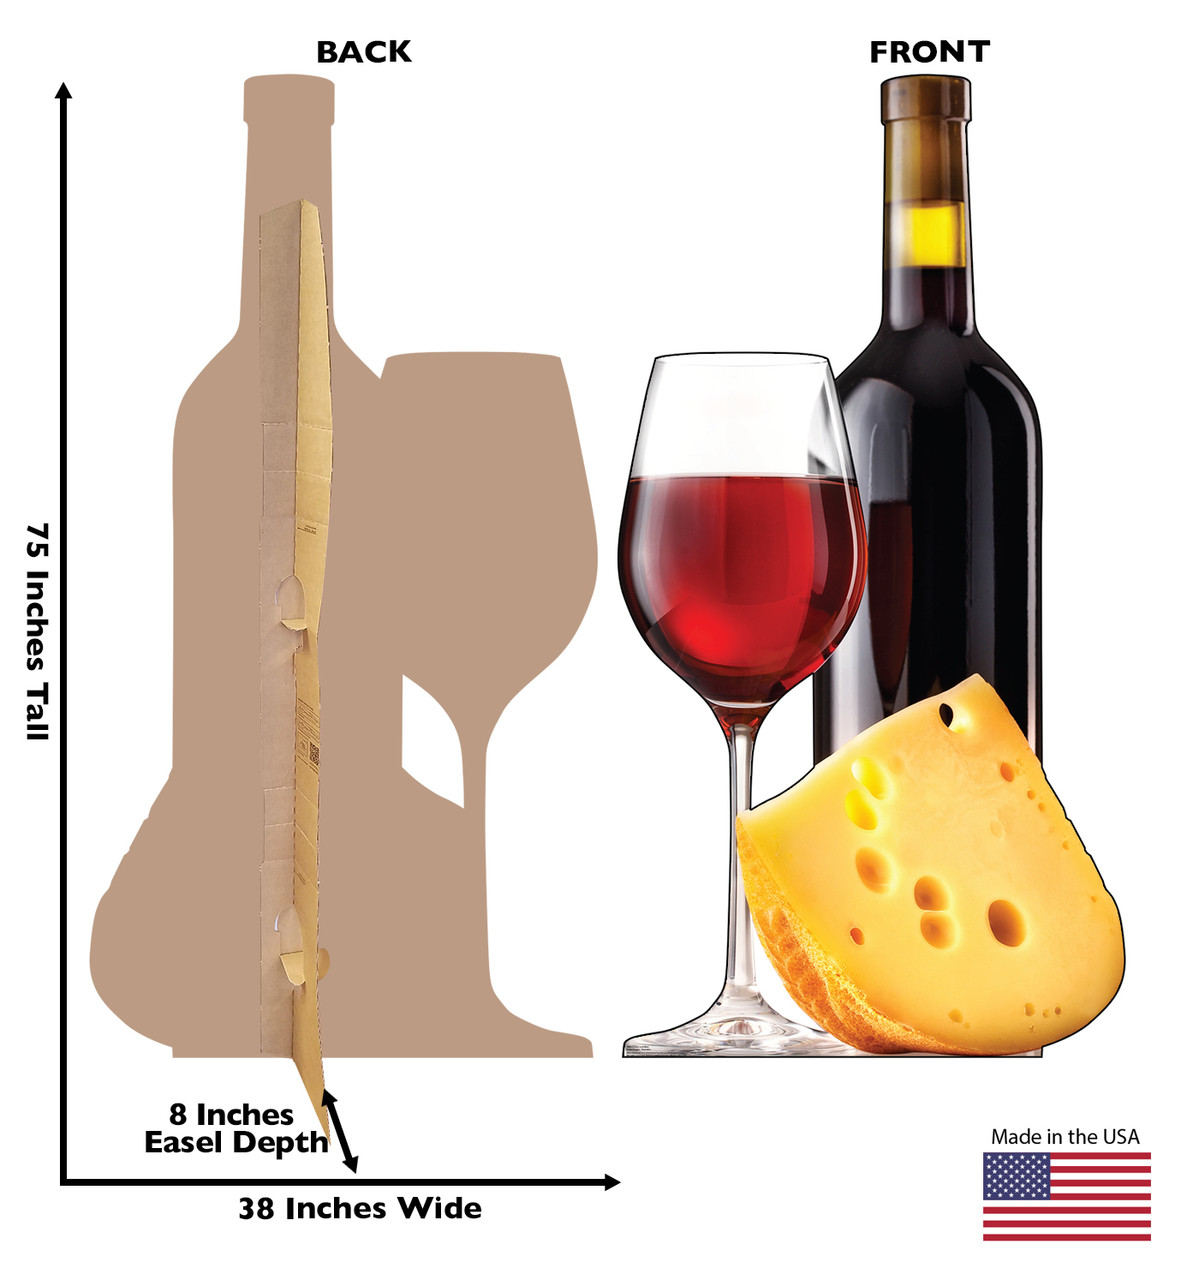 Life-size cardboard standee of Cheese and Wine. View of back and front of standee with dimensions.